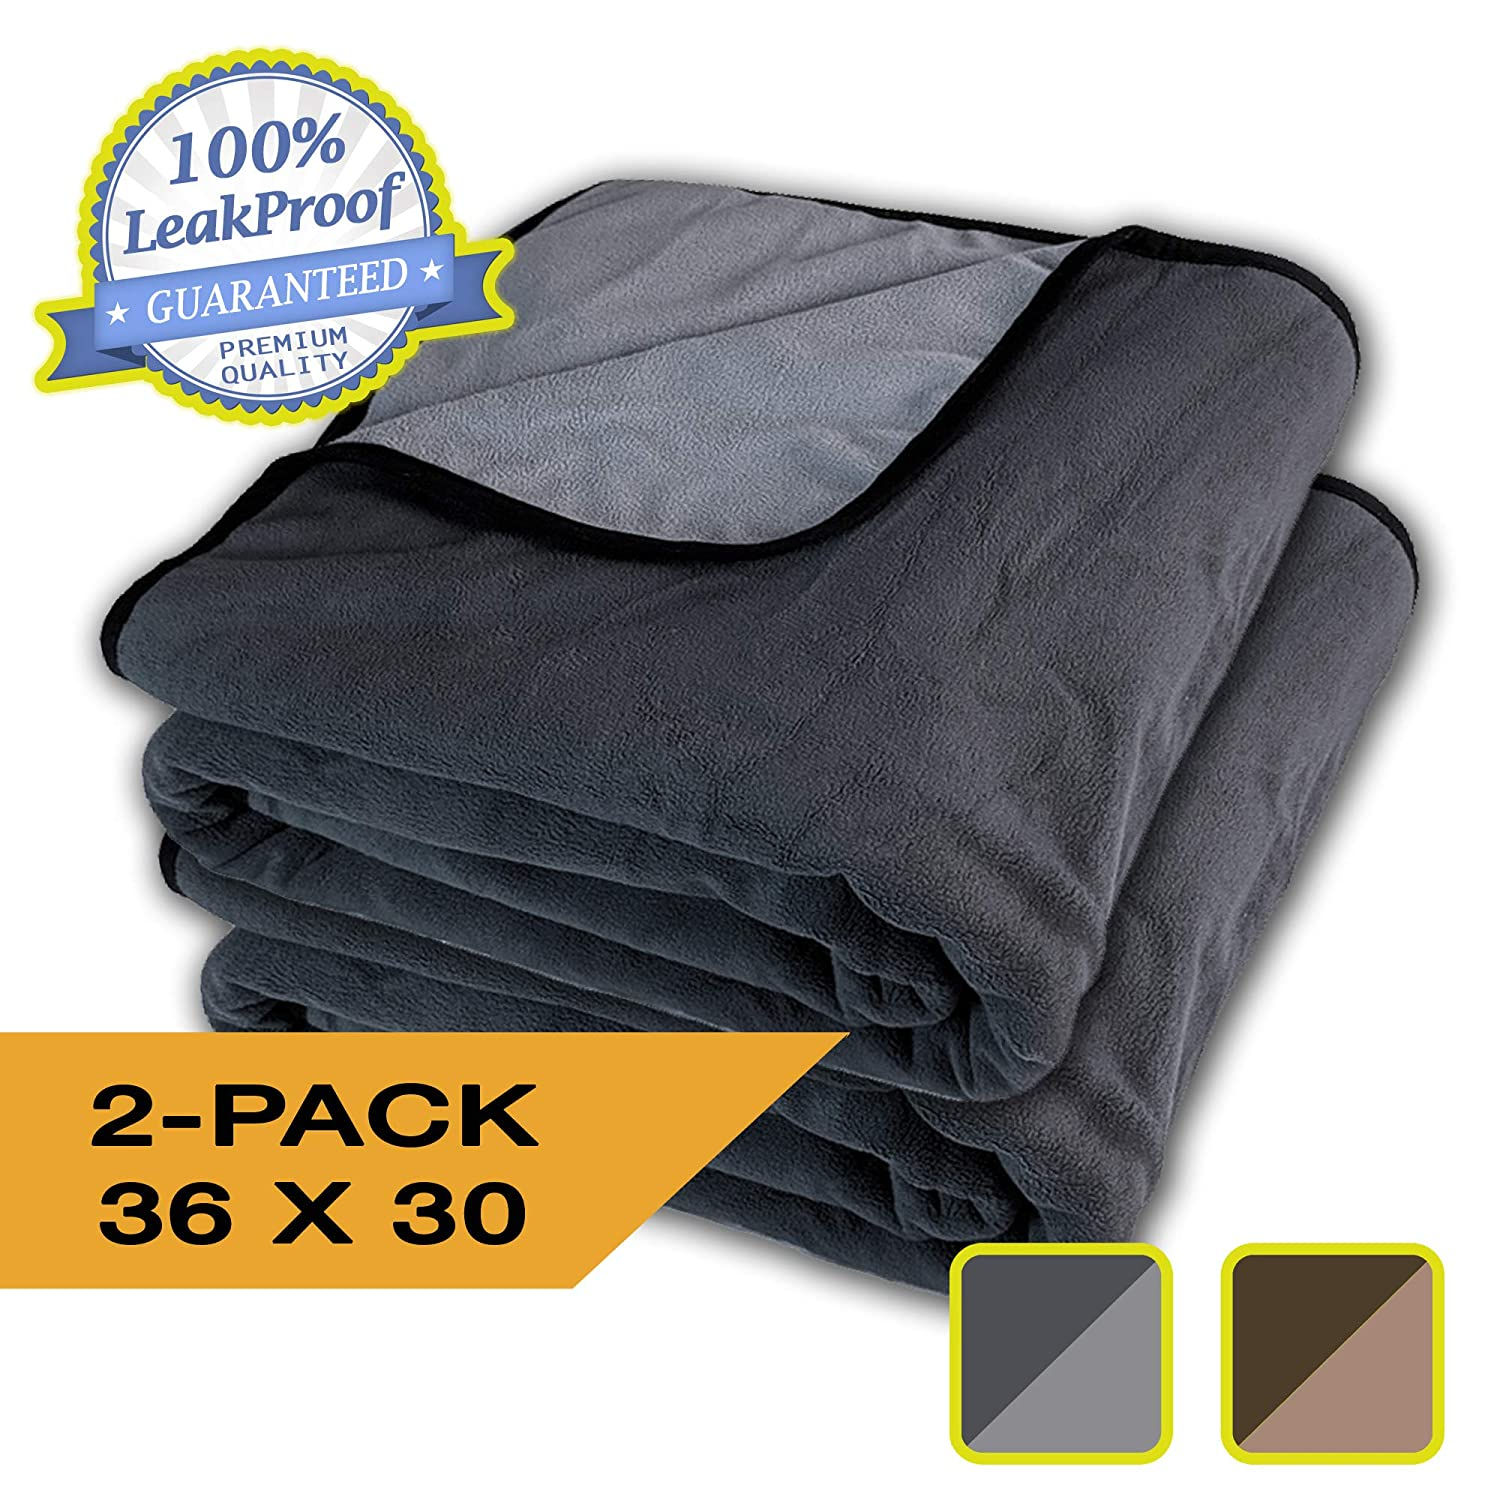 Colors//Sizes Cats 3 Layer Blanket Cozy Soft Adults Dogs Totally Pee Proof Baby Waterproof 100/% Leak Proof Pets